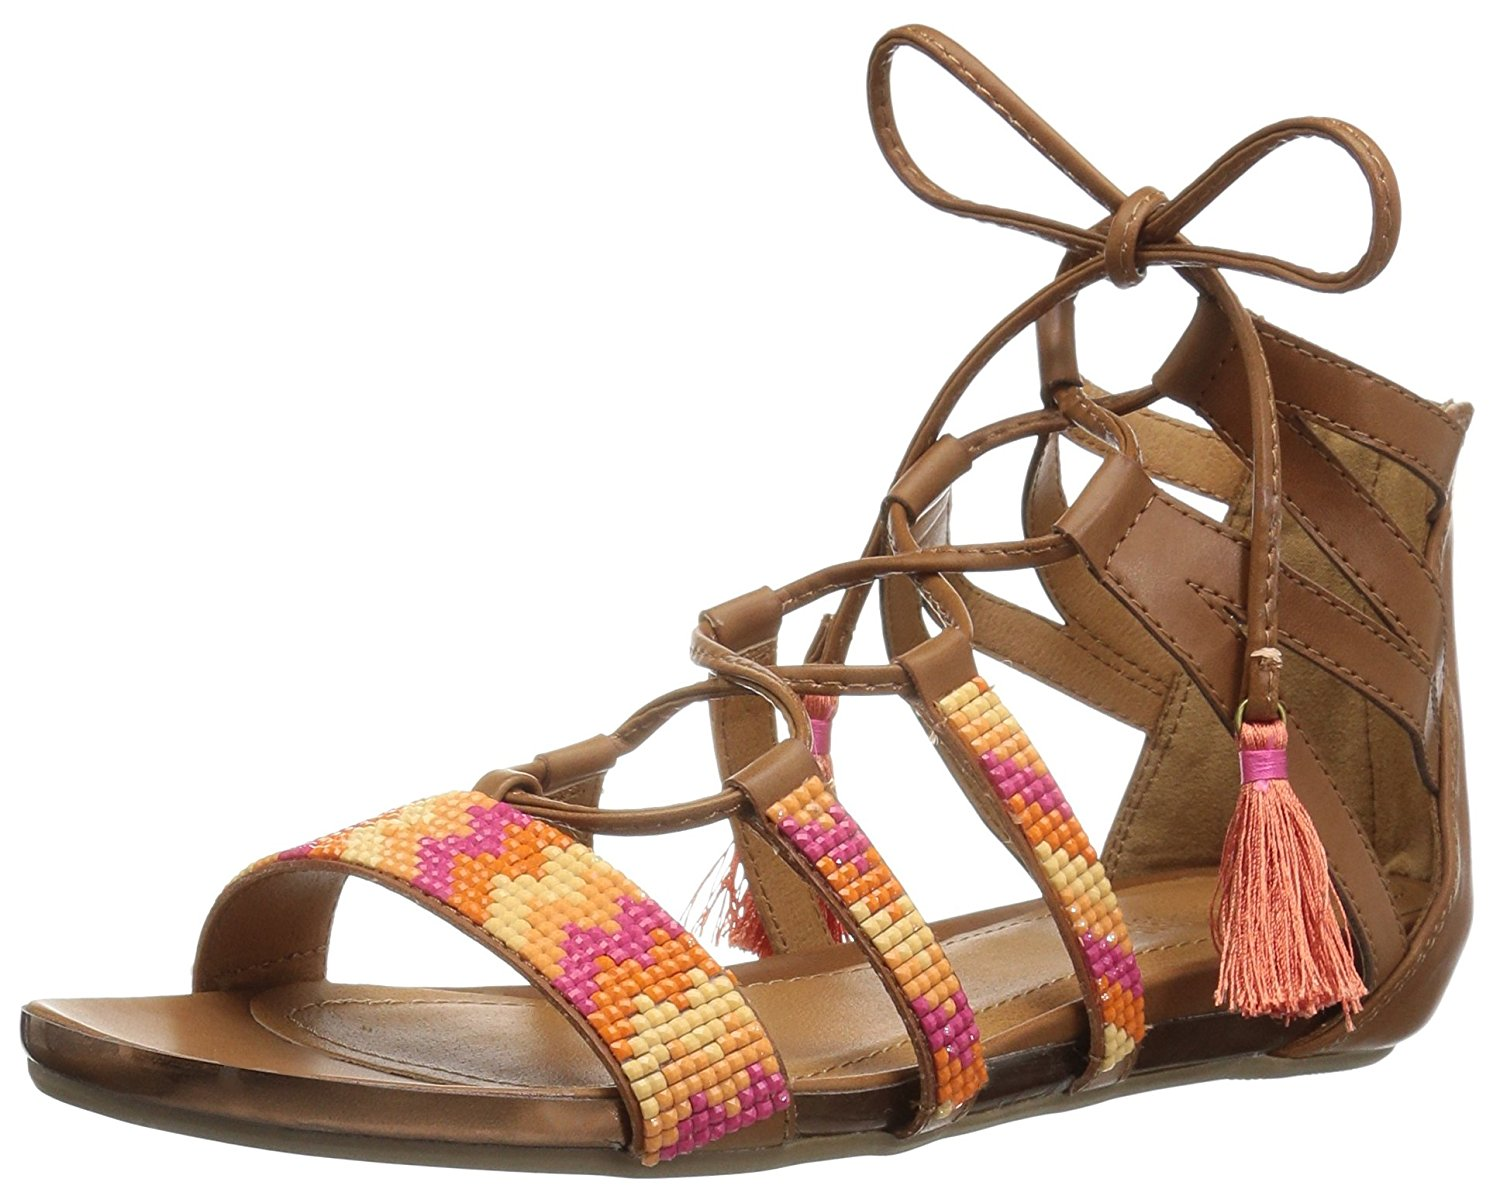 349f5d91b99a Details about Kenneth Cole REACTION Women s Lost Look 2 Gladiator Sandal